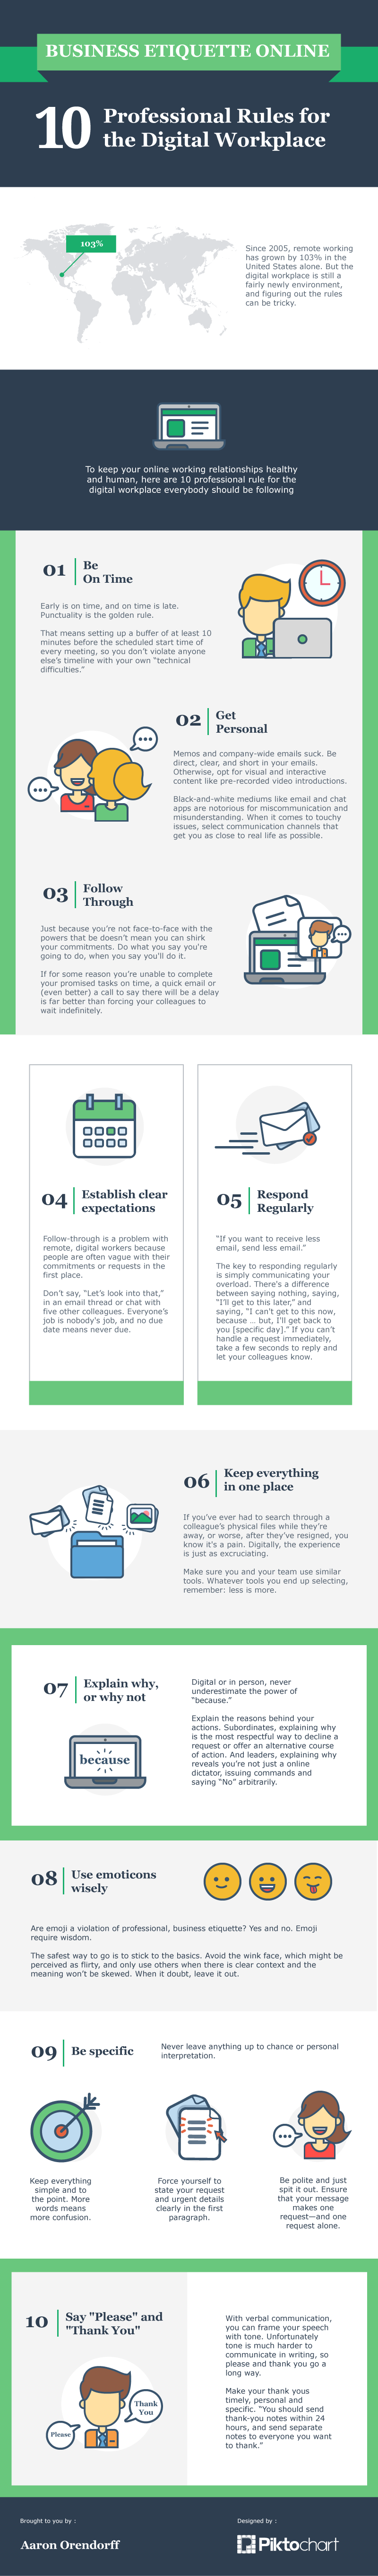 10 Professional Rules for the Digital Workplace #Infographic